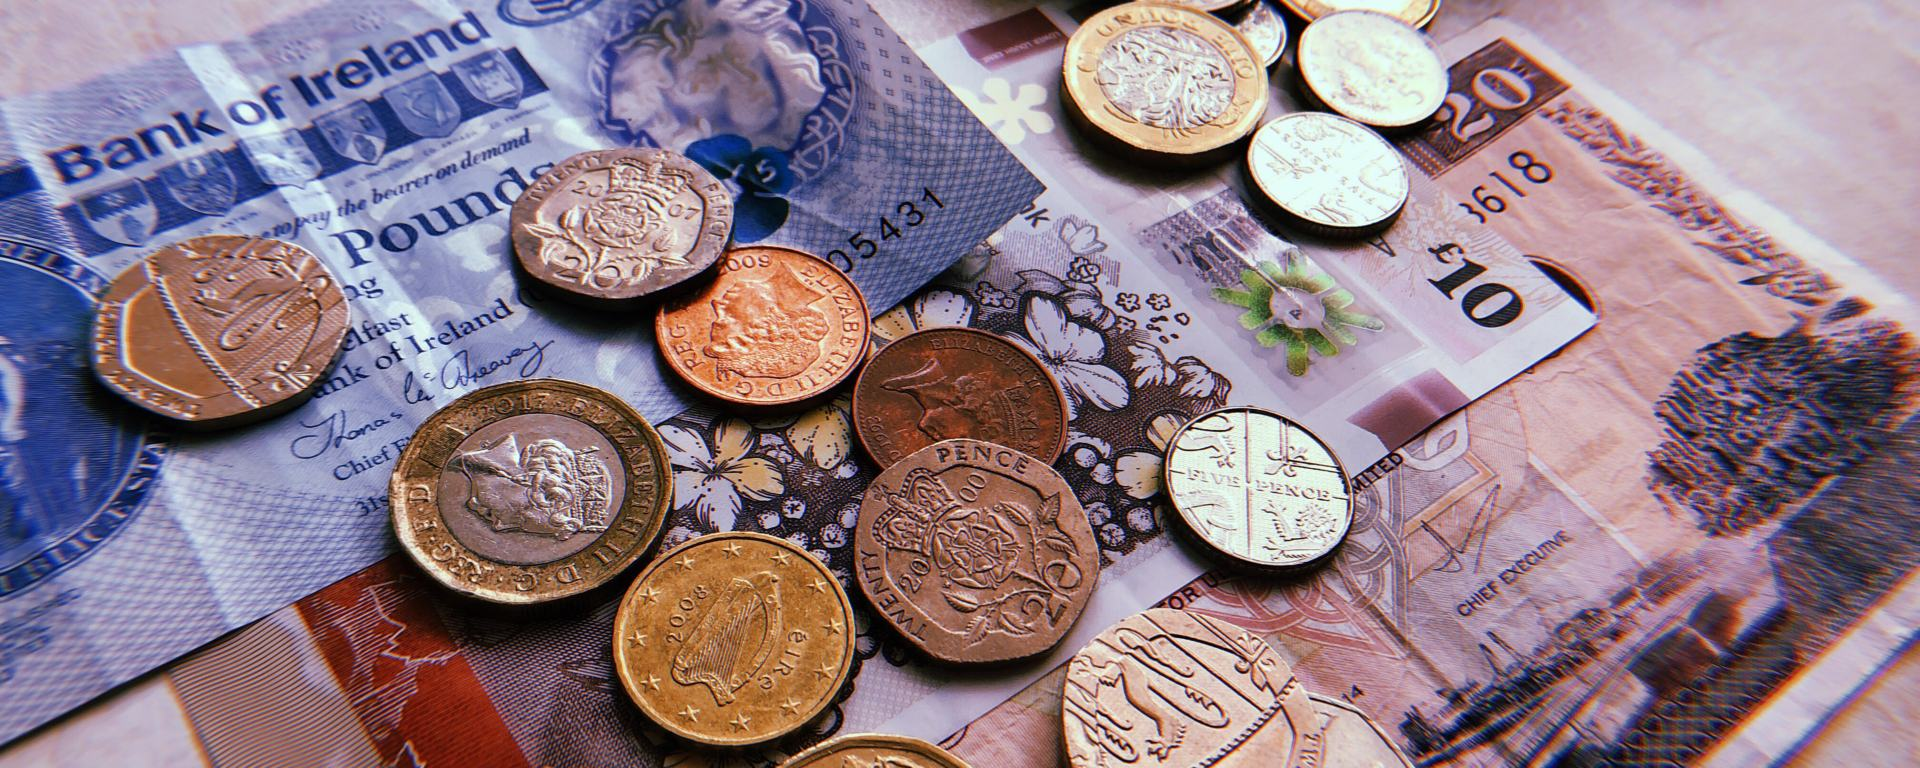 Banknotes and coins from Northern Ireland.